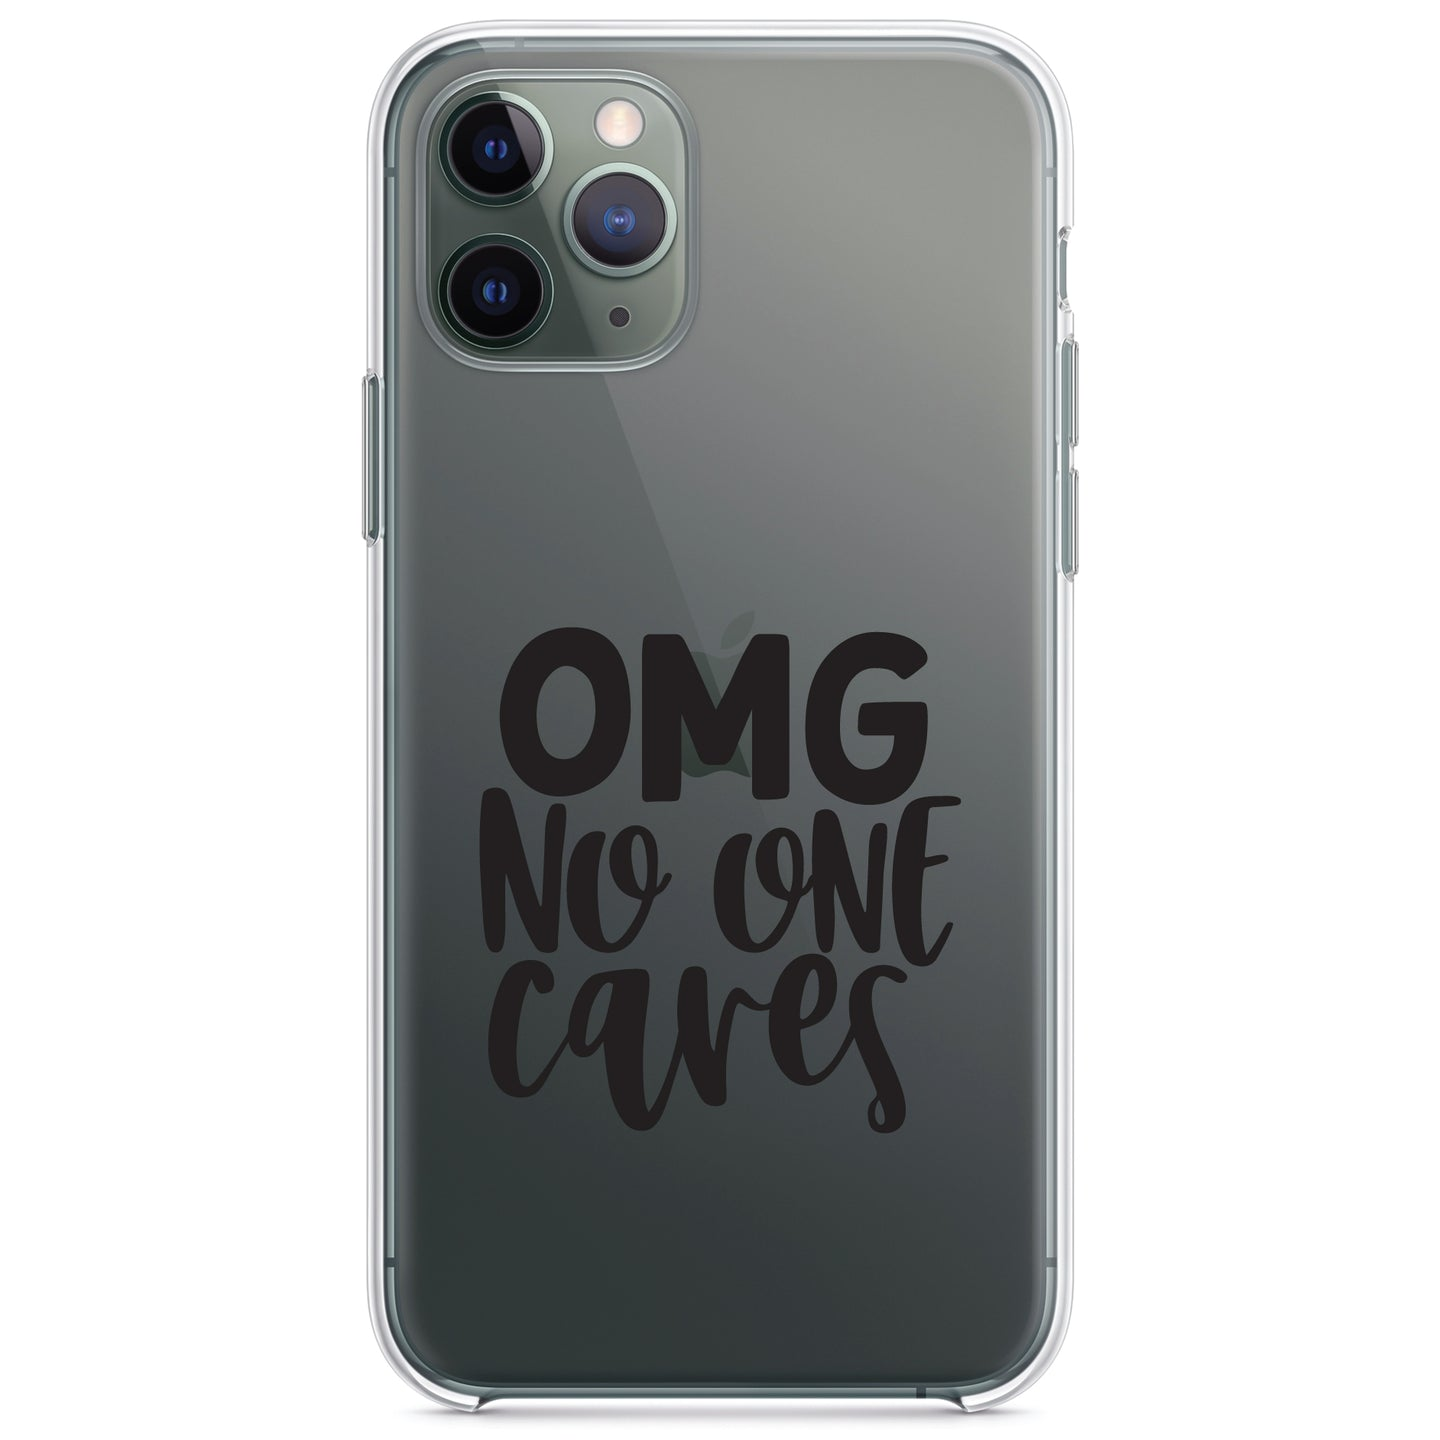 DistinctInk® Clear Shockproof Hybrid Case for Apple iPhone / Samsung Galaxy / Google Pixel - OMG No One Cares - Black